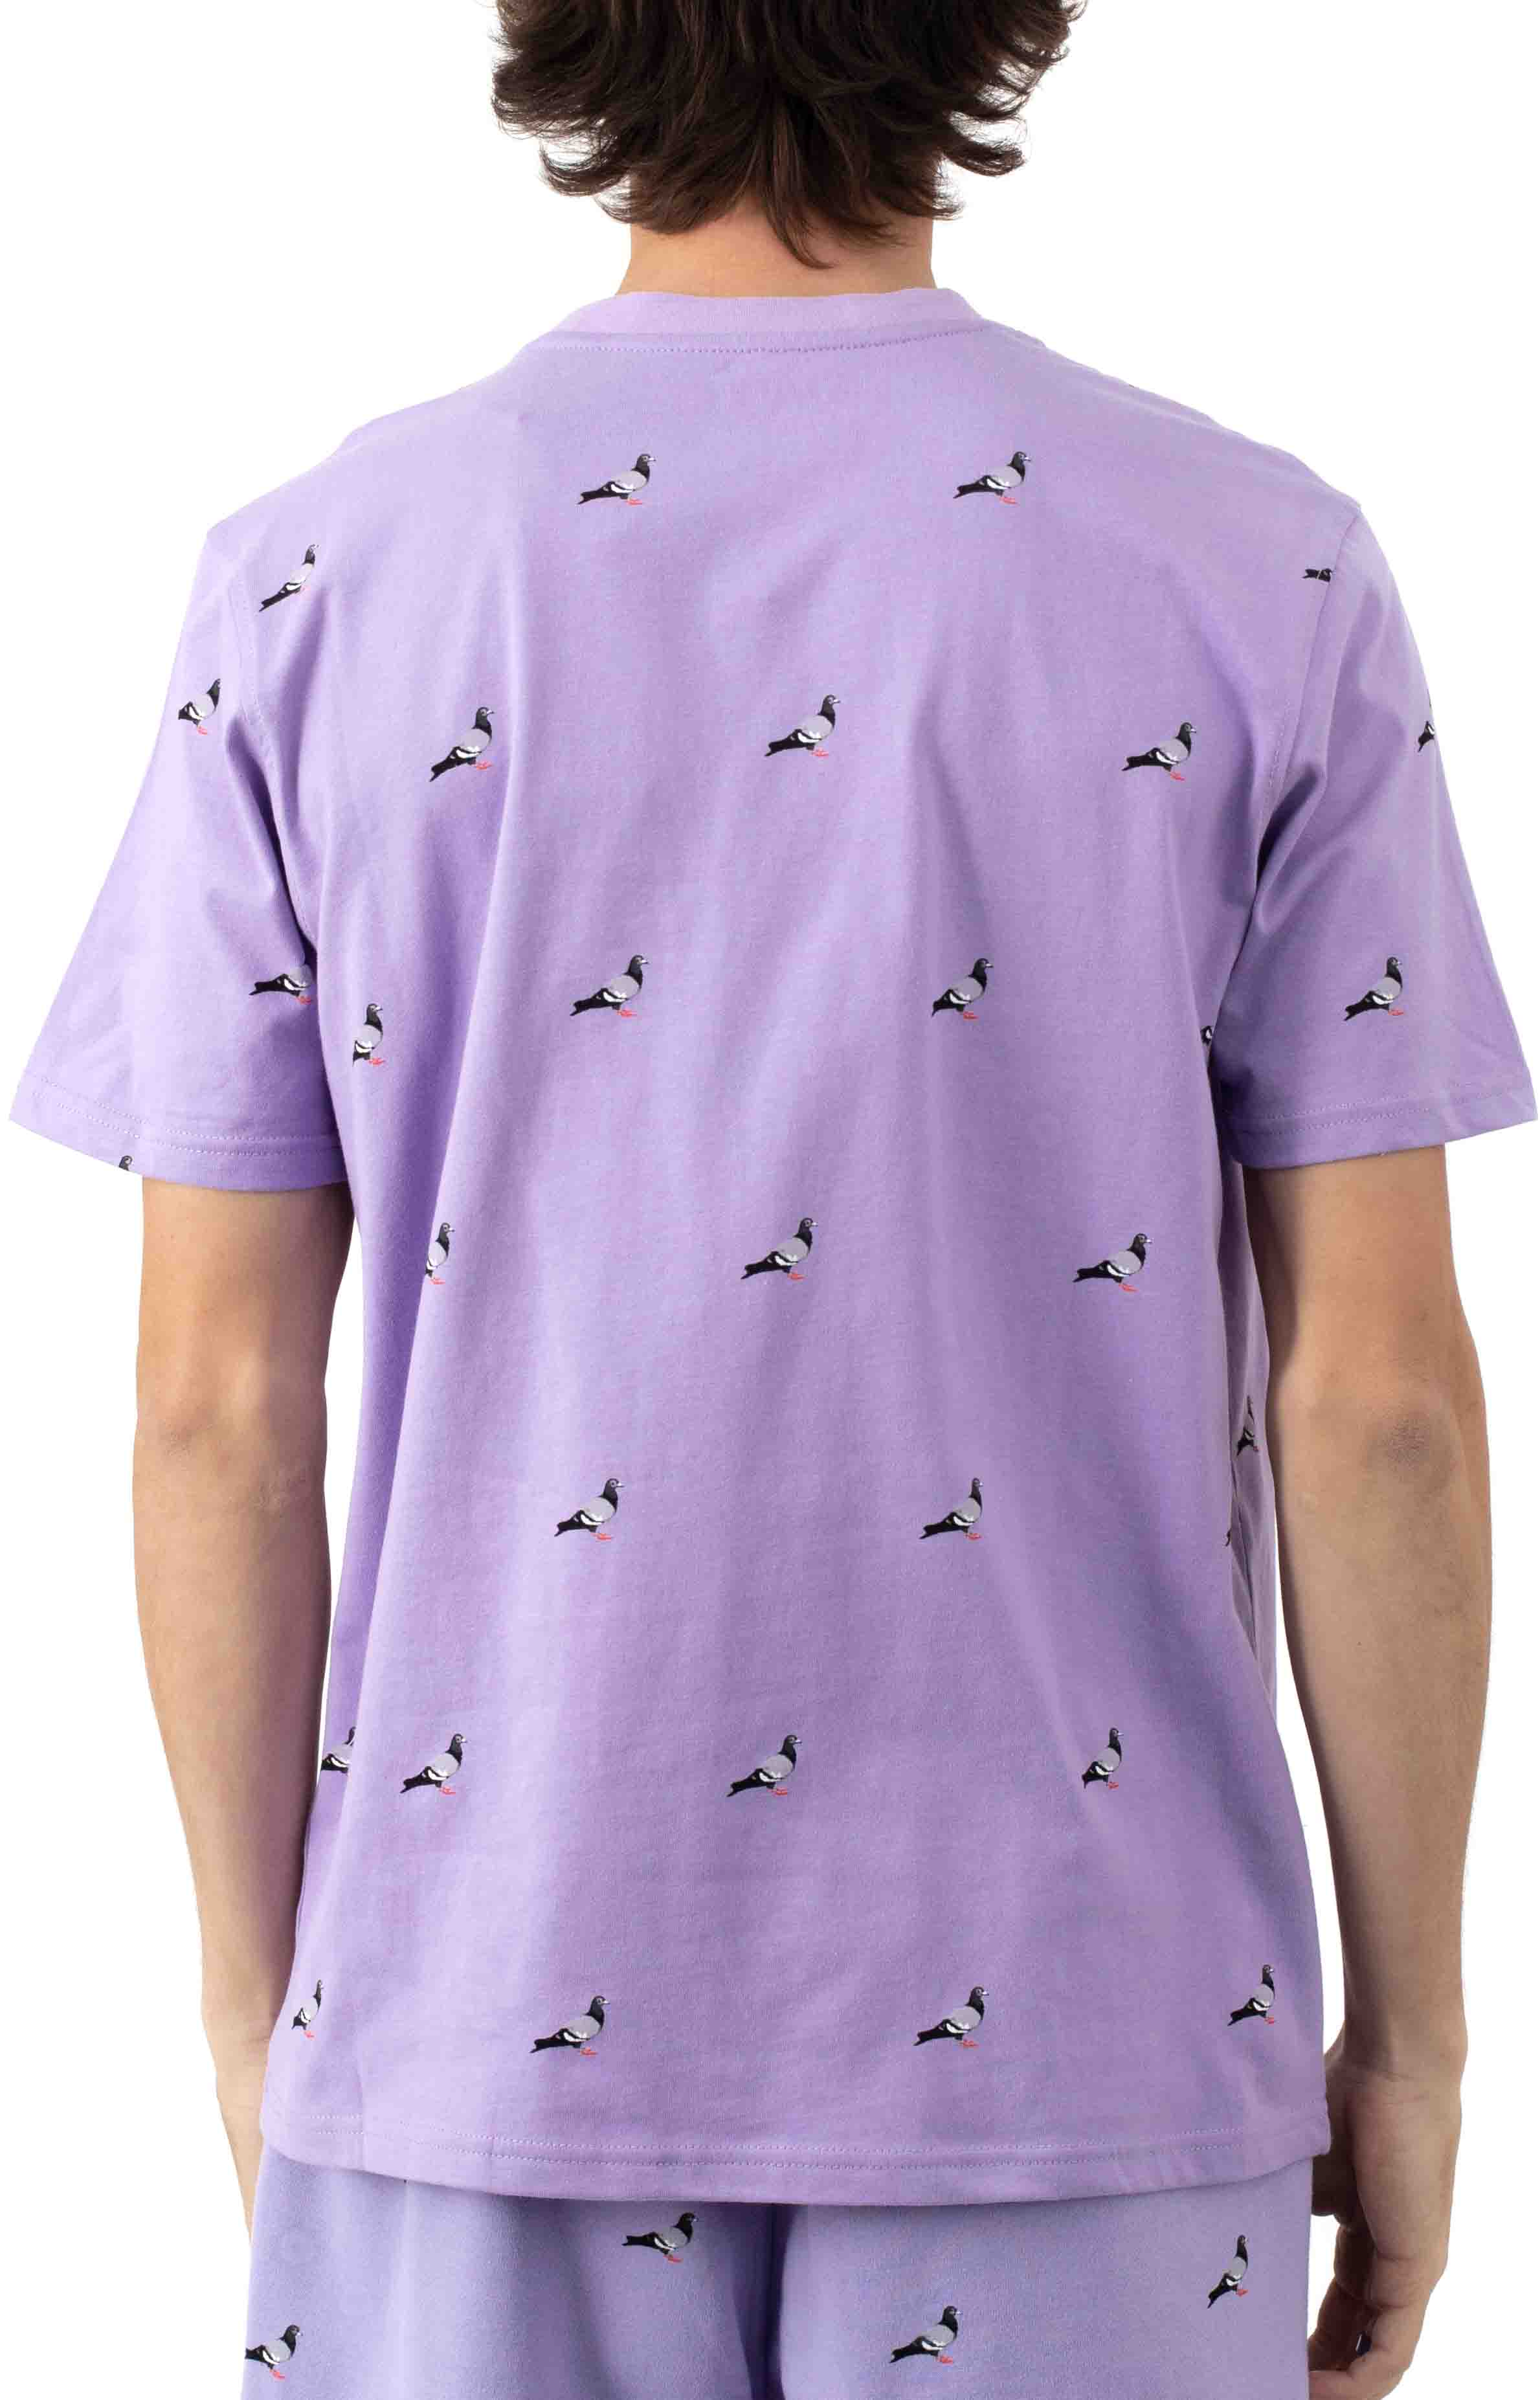 All Over Pigeon T-Shirt - Lilac 3